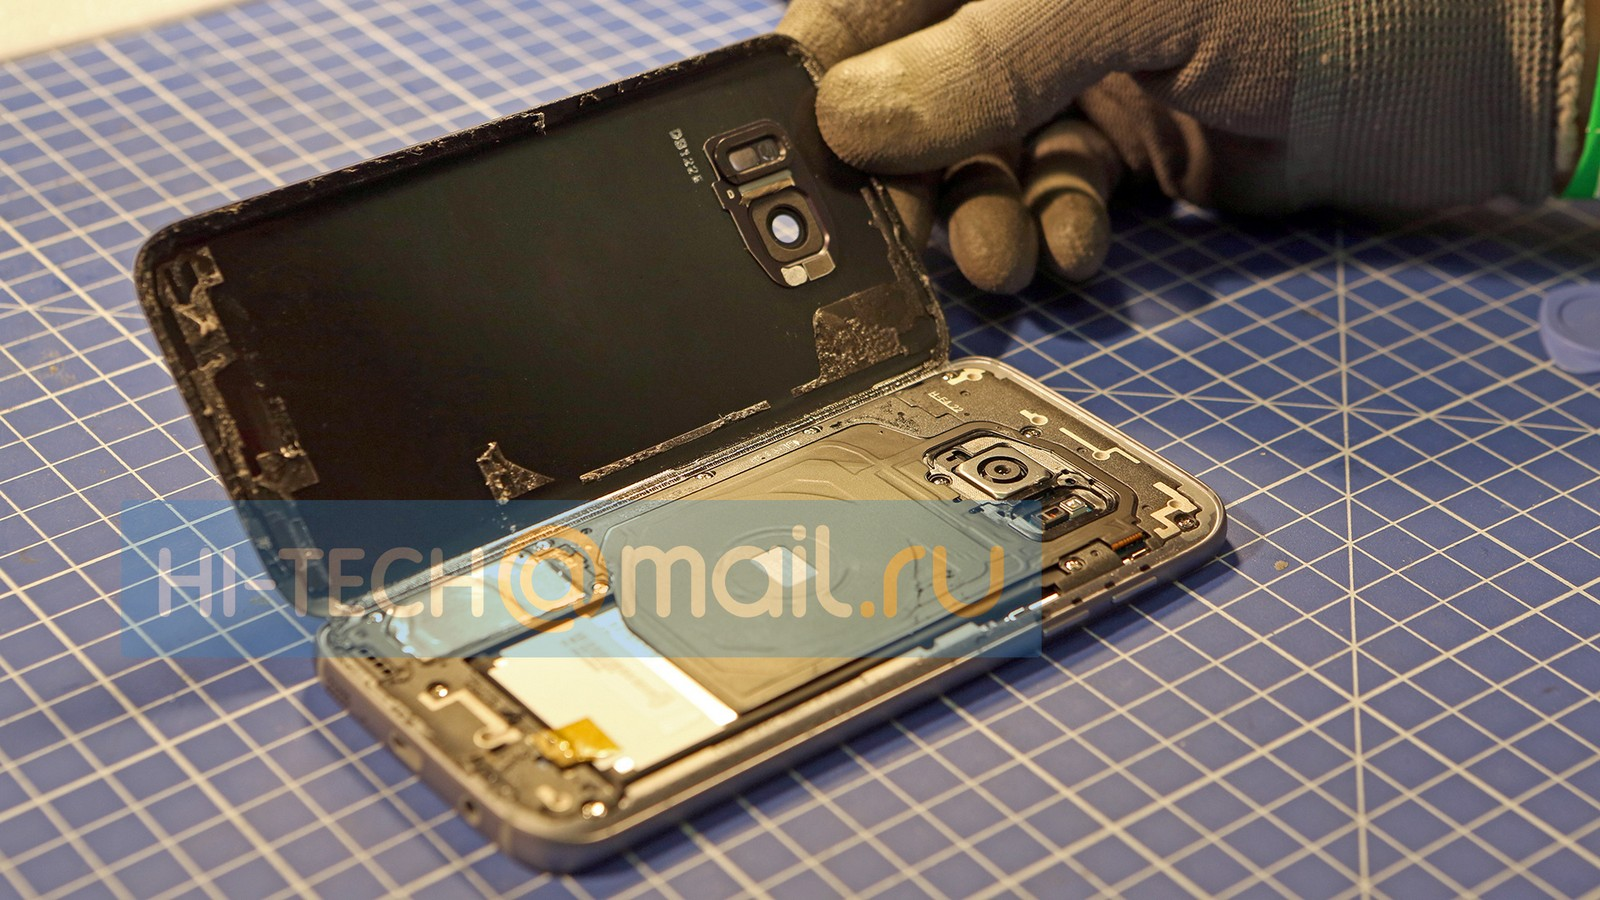 Samsung-Galaxy-S7-teardown-reveals-the-liquid-cooling-system